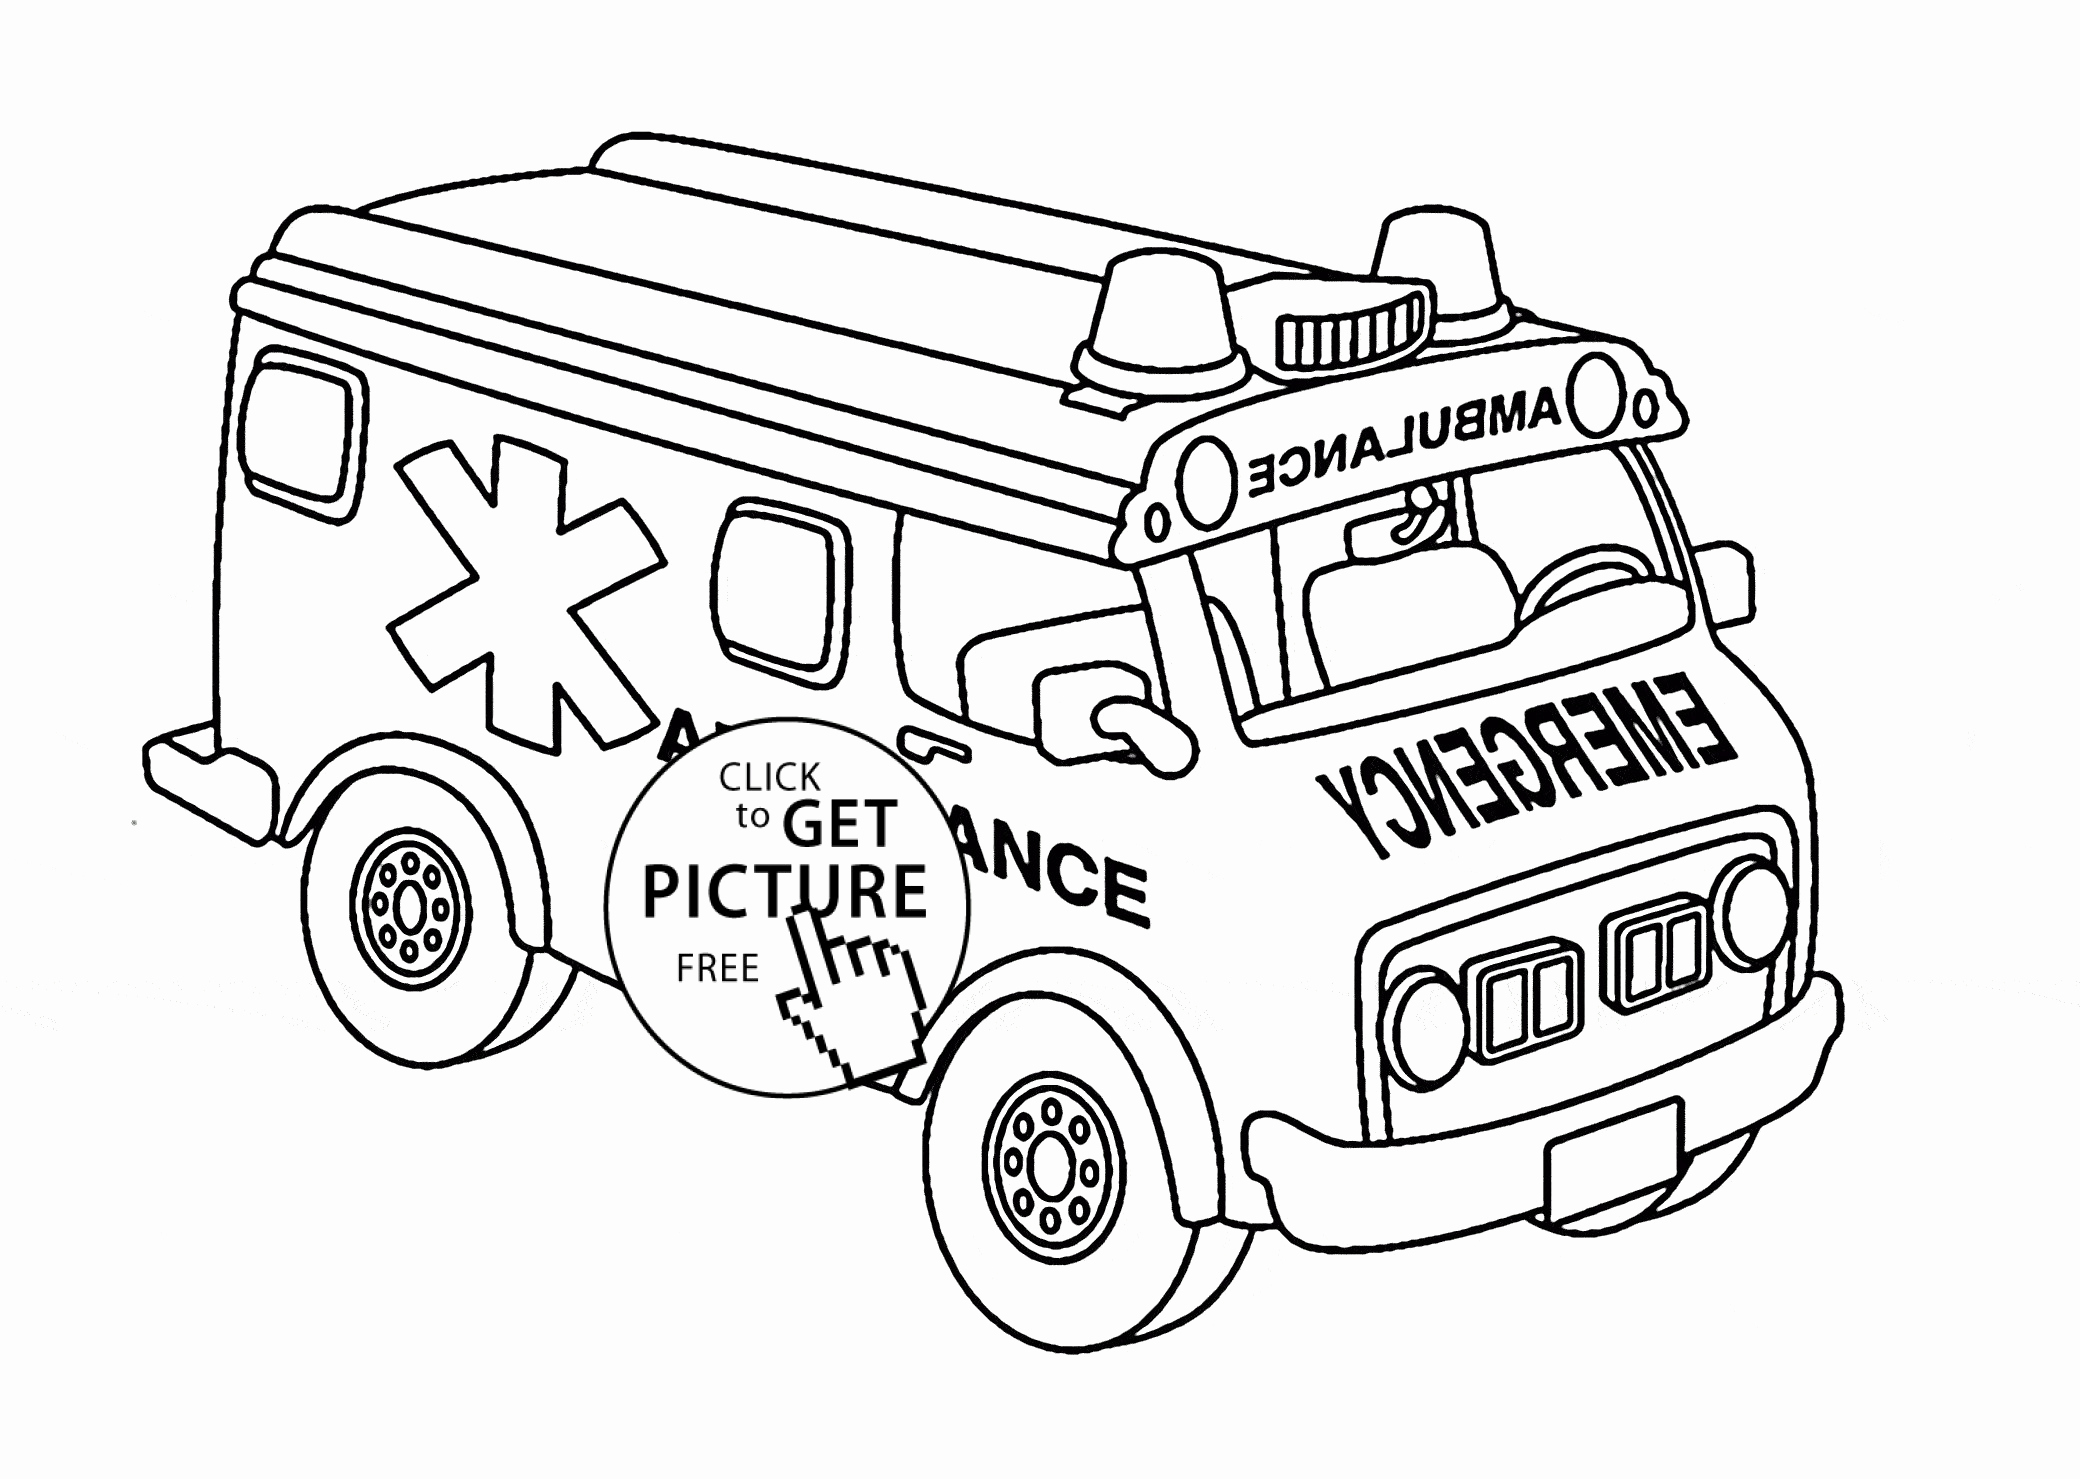 Lego Car Coloring Pages At Getcolorings